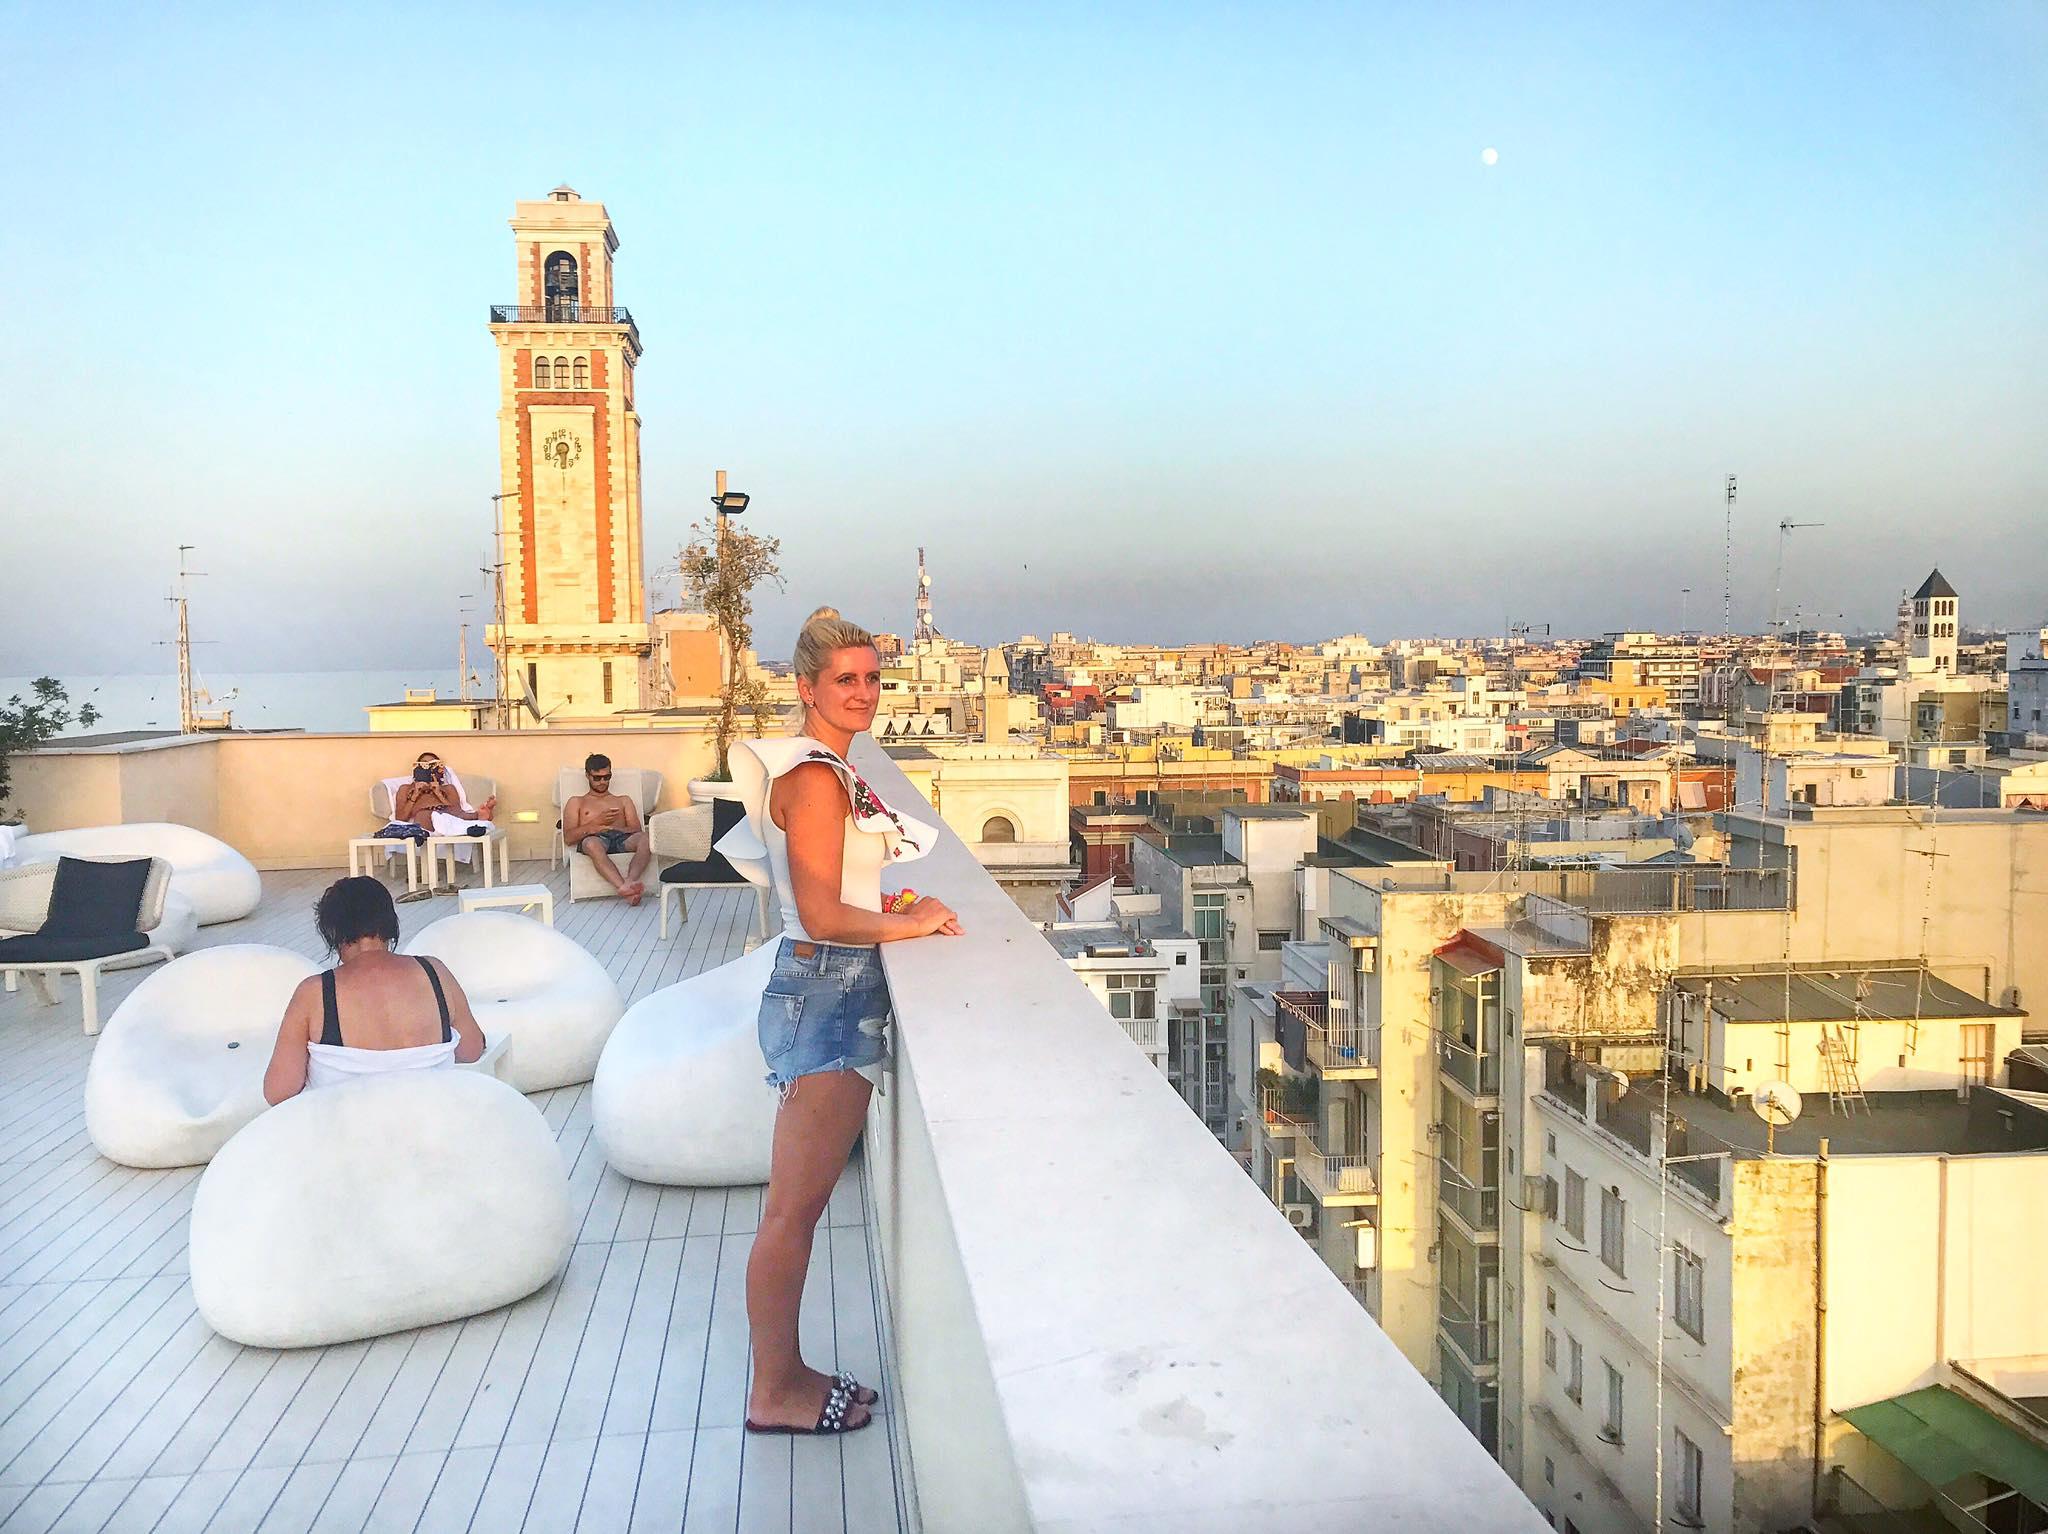 Bari-Roadtrip-Rooftop-Bar-carrieslifestyle-Tamara-Prutsch-Swimsuit-Puglia-Apulien